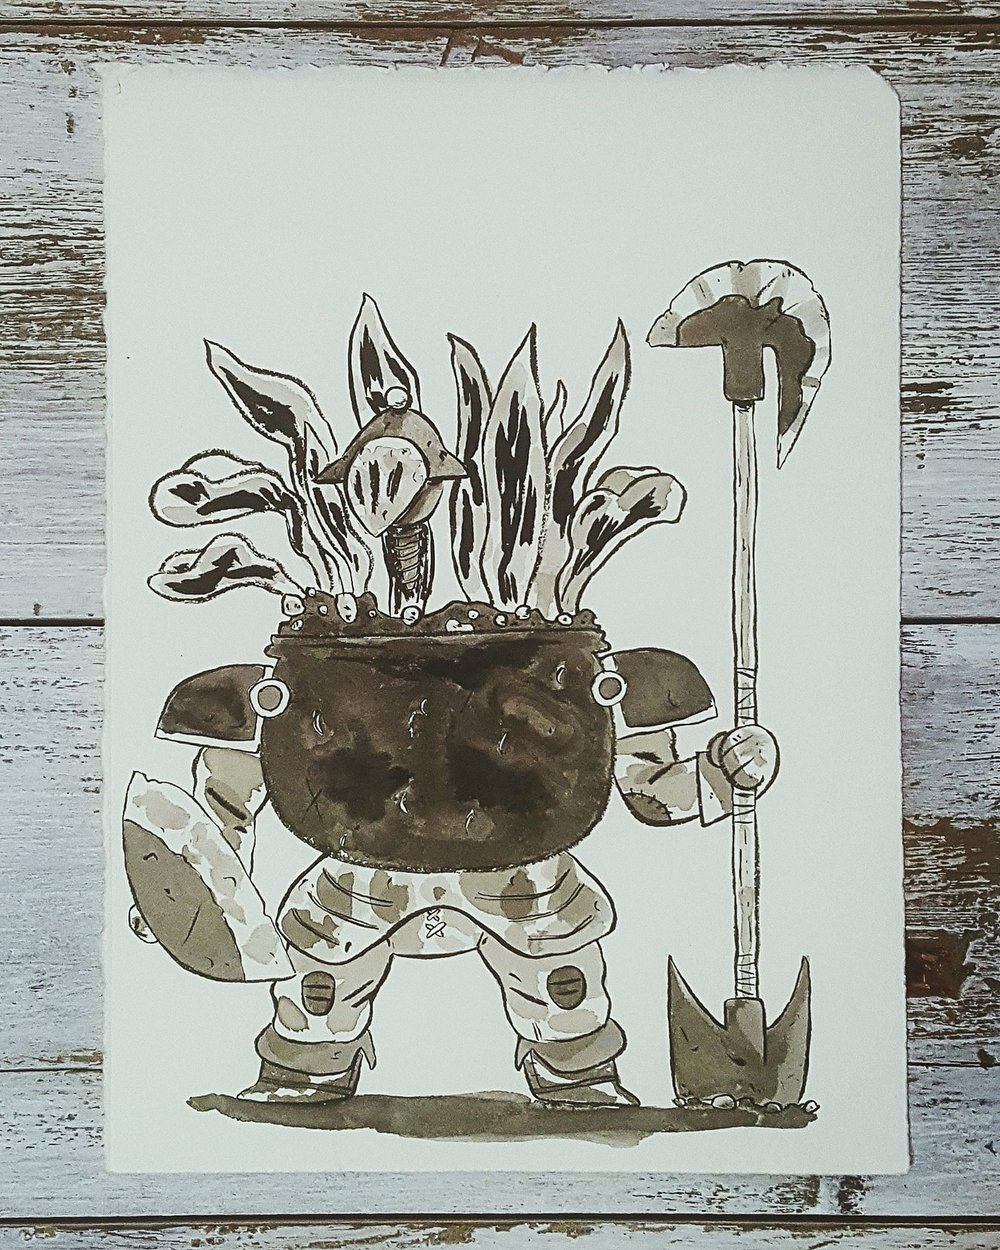 A Knight a Day No. 19, Pot Hobs, Garden Pot - These enchanted pots can be found on the grounds around witches' huts, they use them to fend off intruders.